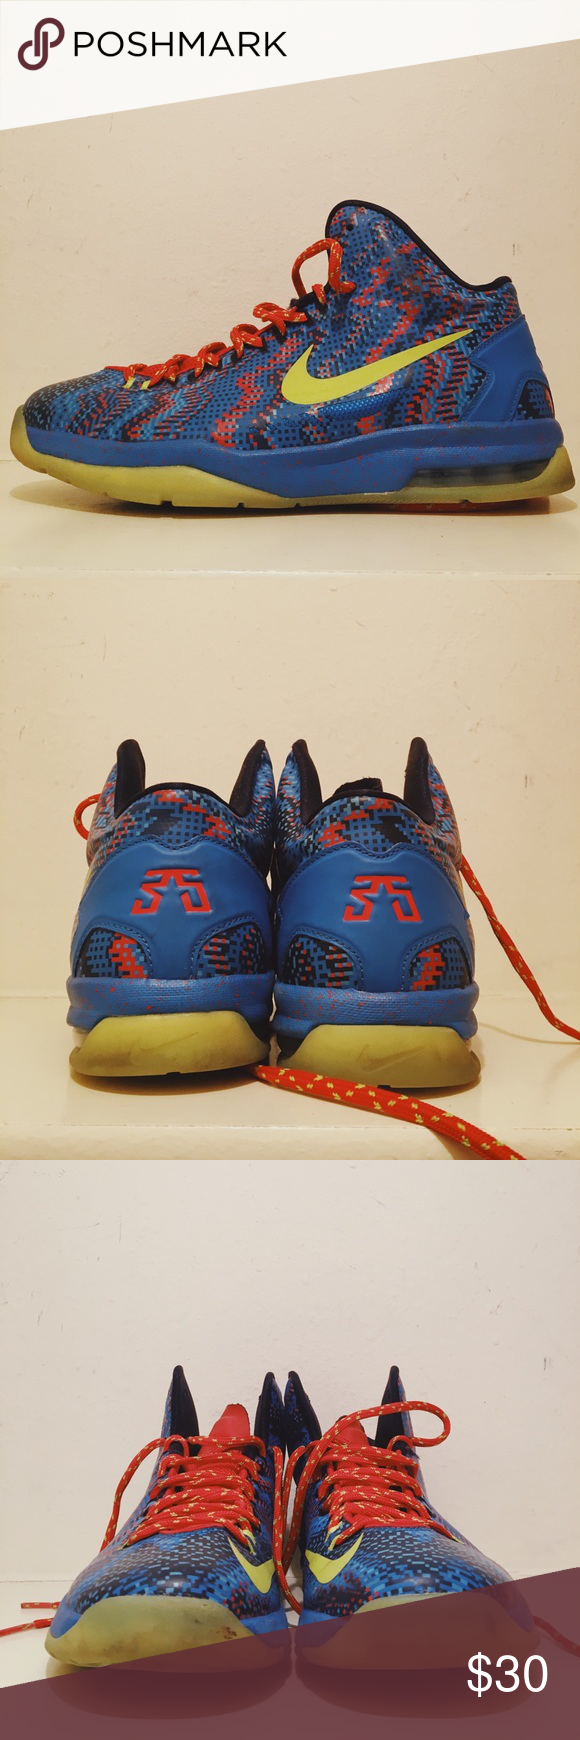 465558b6b1af Nike KD 5 Christmas Sneakers Gently used Kevin Durant 5 Christmas sneakers.  No box